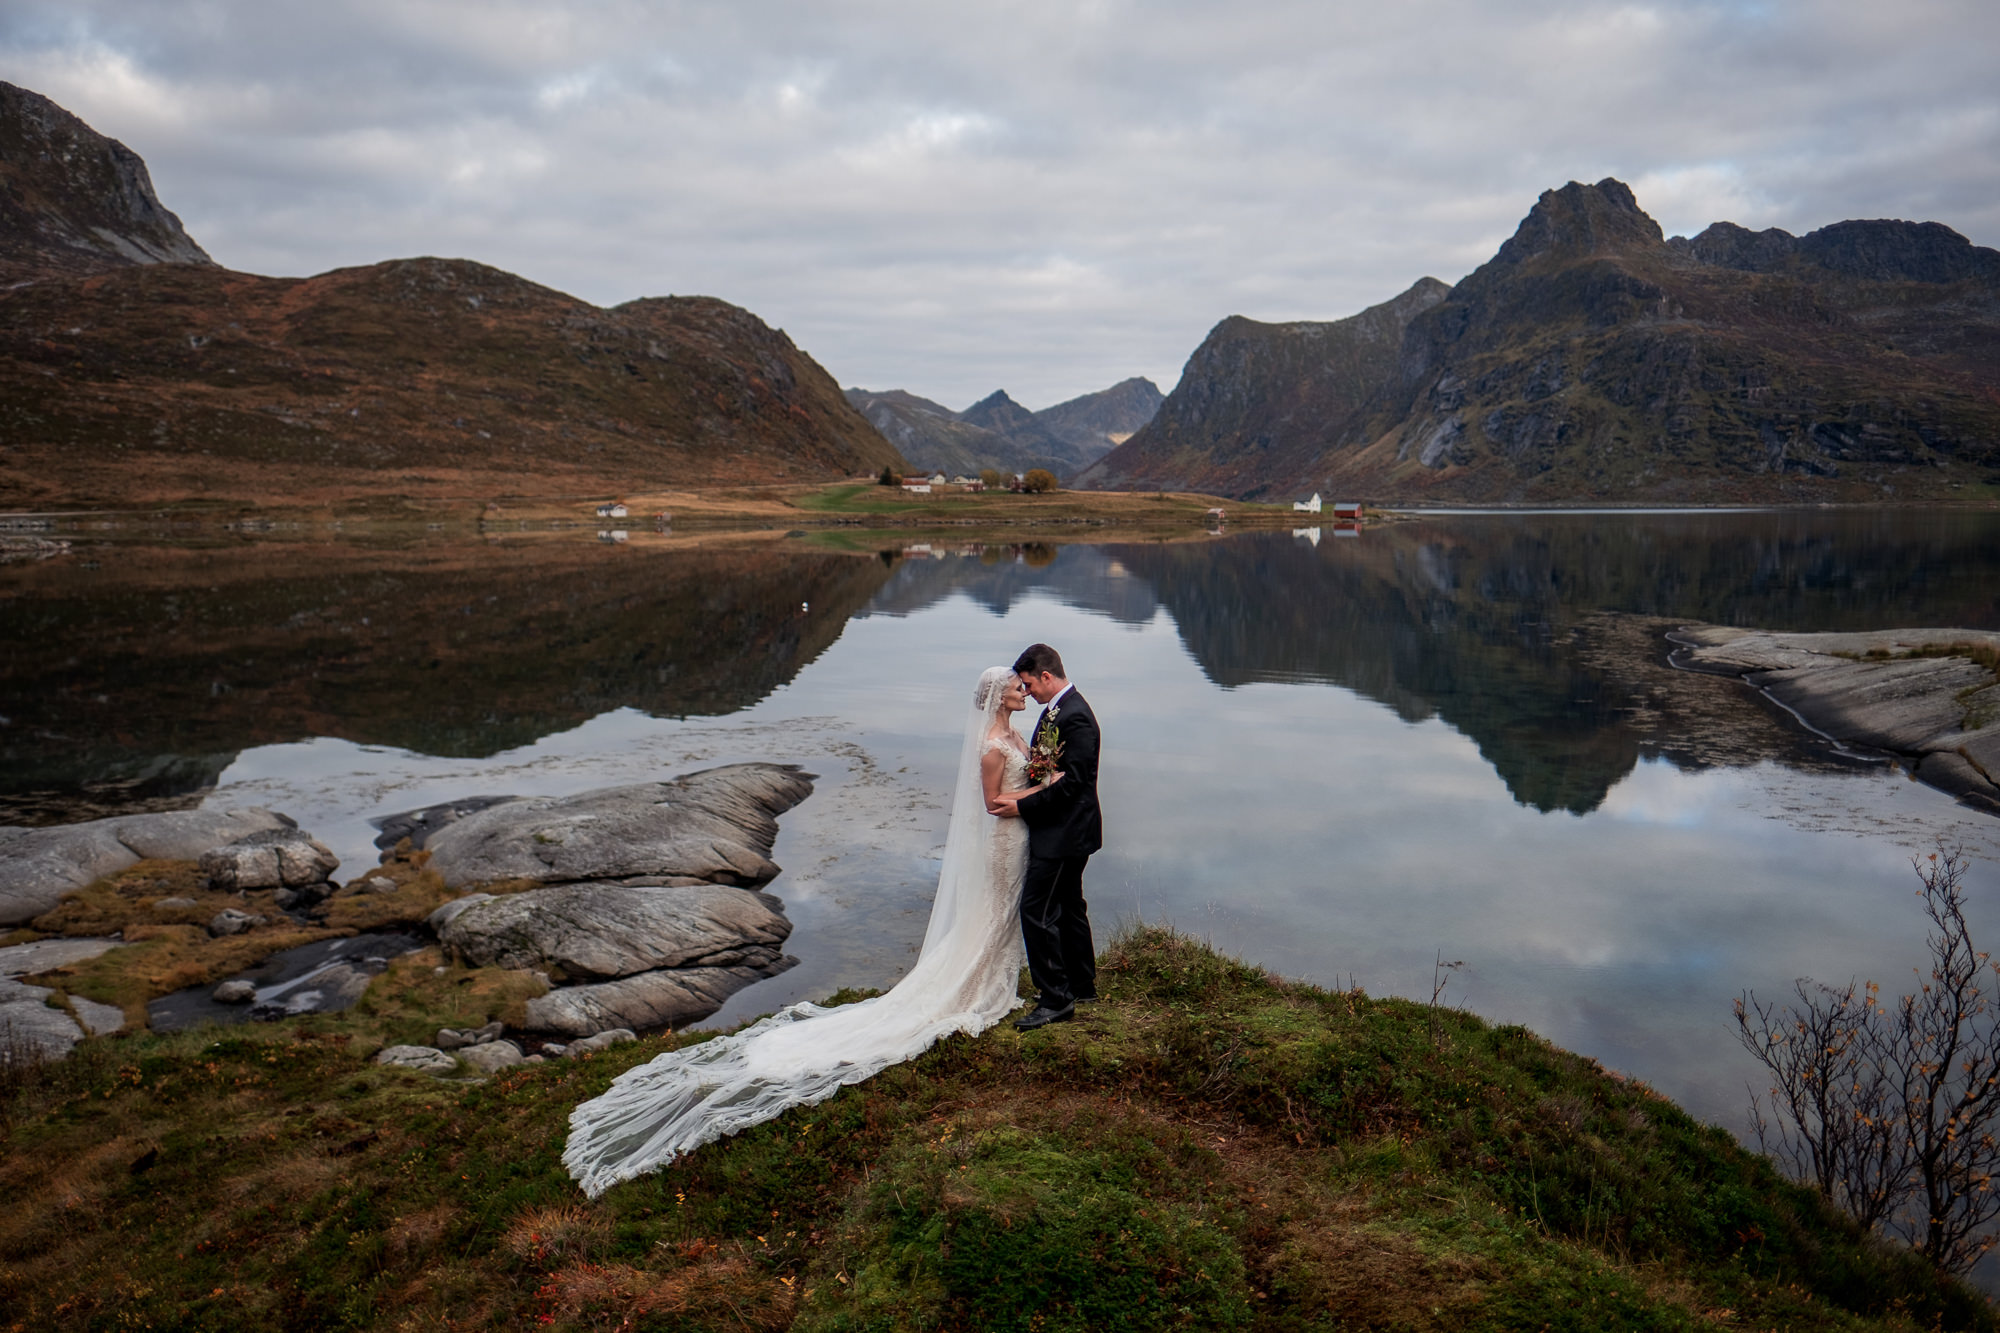 Portrait of bride and groom in breathtaking landscape of mountains and lake, by Nordica